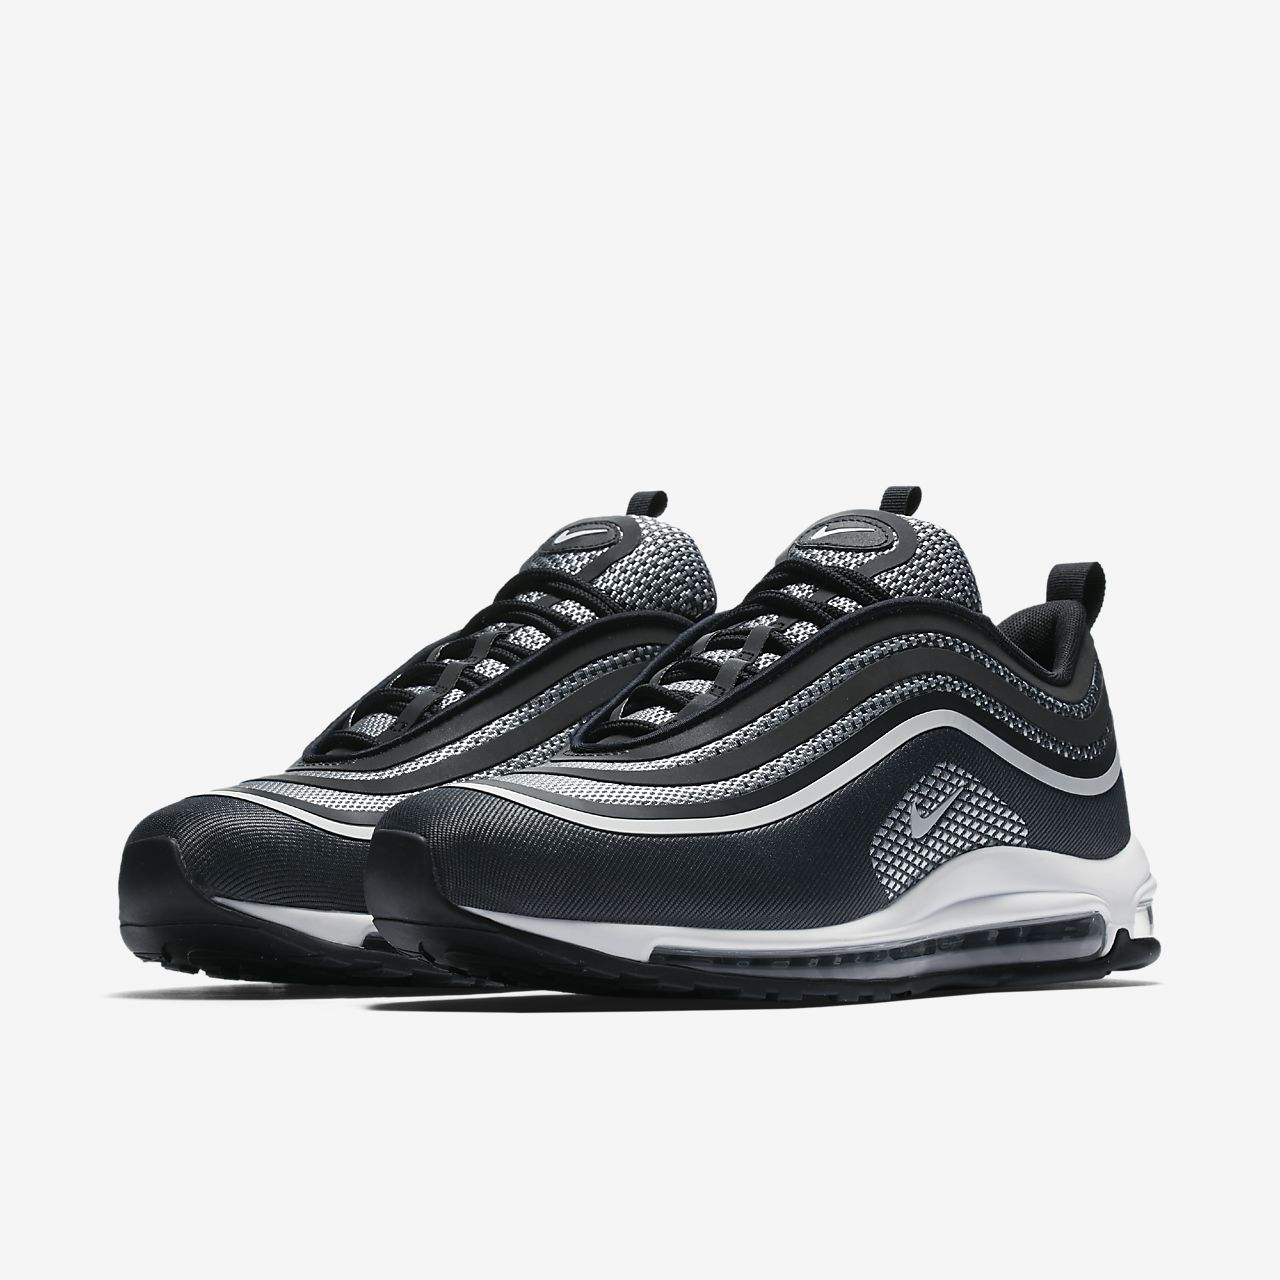 ... Nike Air Max 97 Ultra '17 Men's Shoe